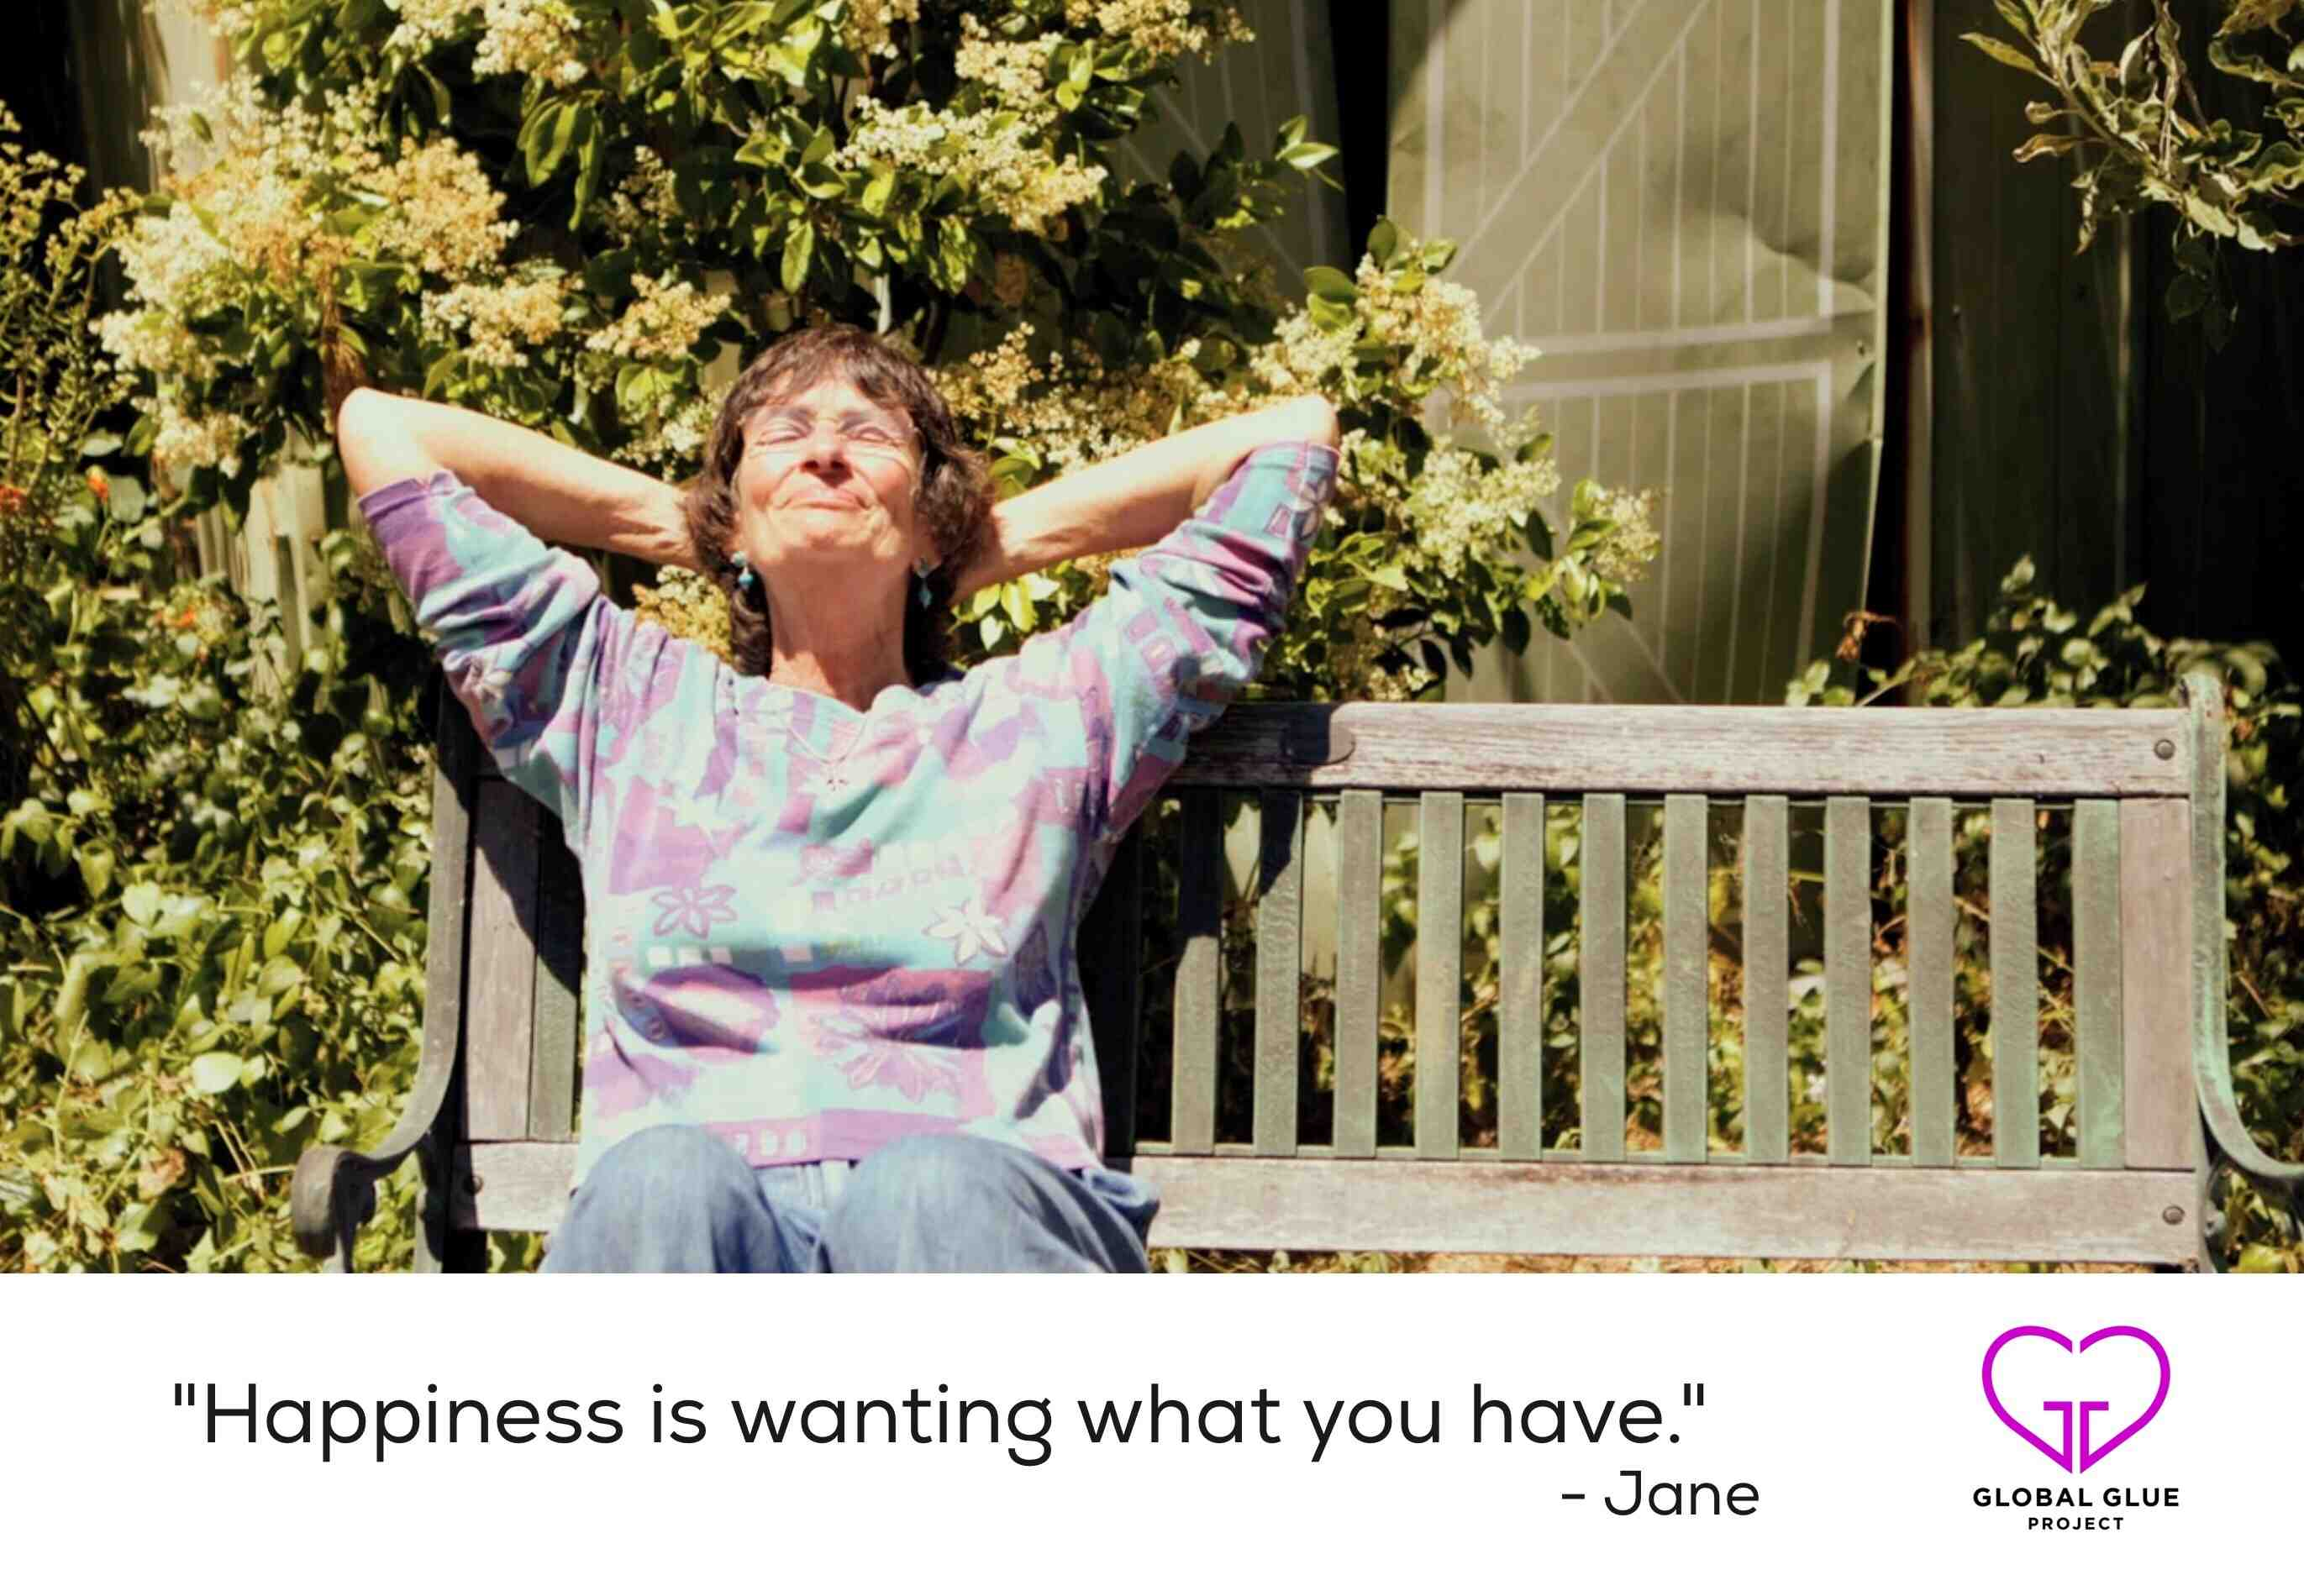 Jane_2_happiness_wanting_what_you_have